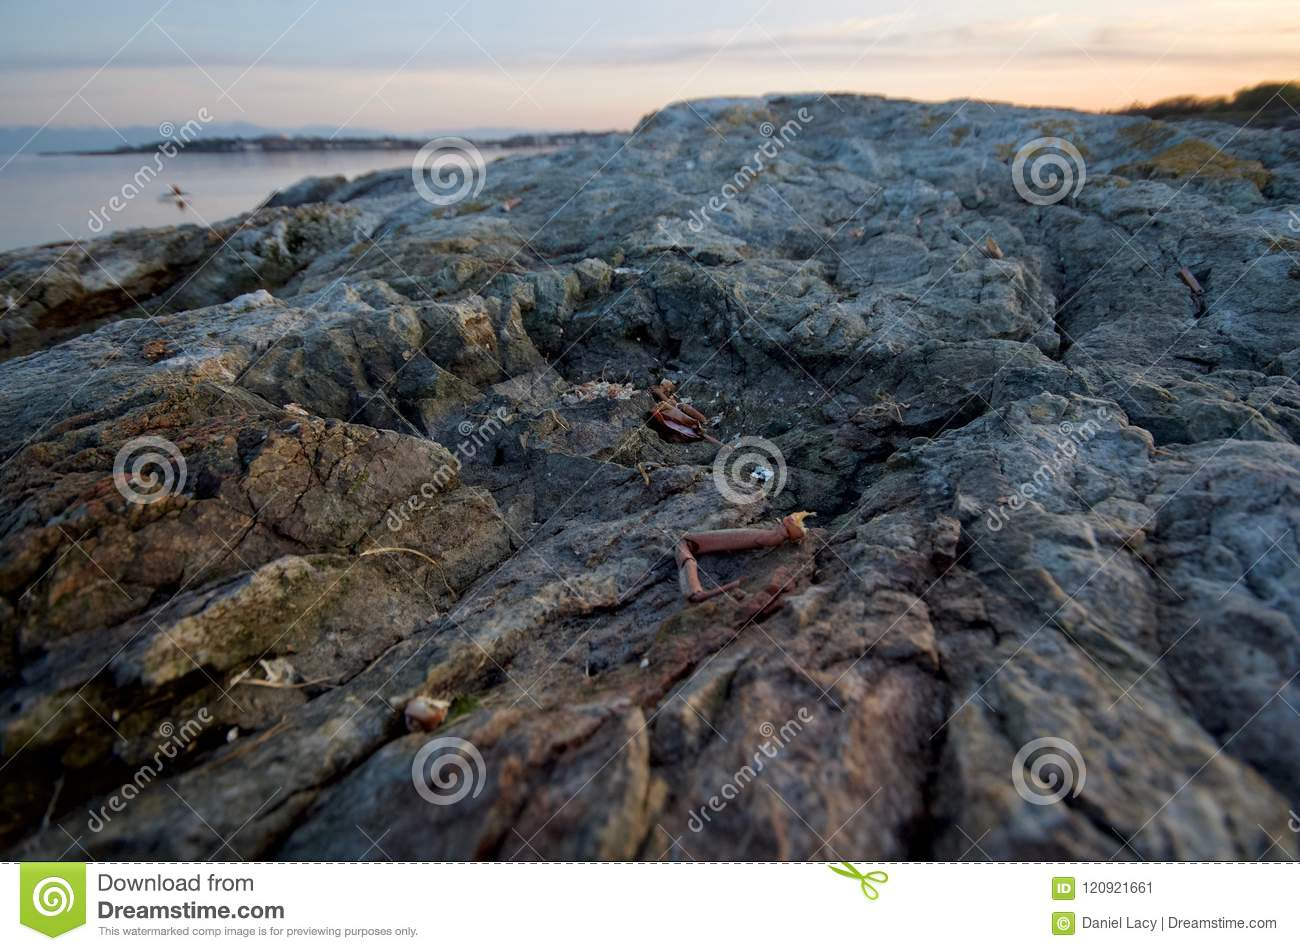 Crab shells scattered on the rocks of Cattle Point with Oak Bay in the background